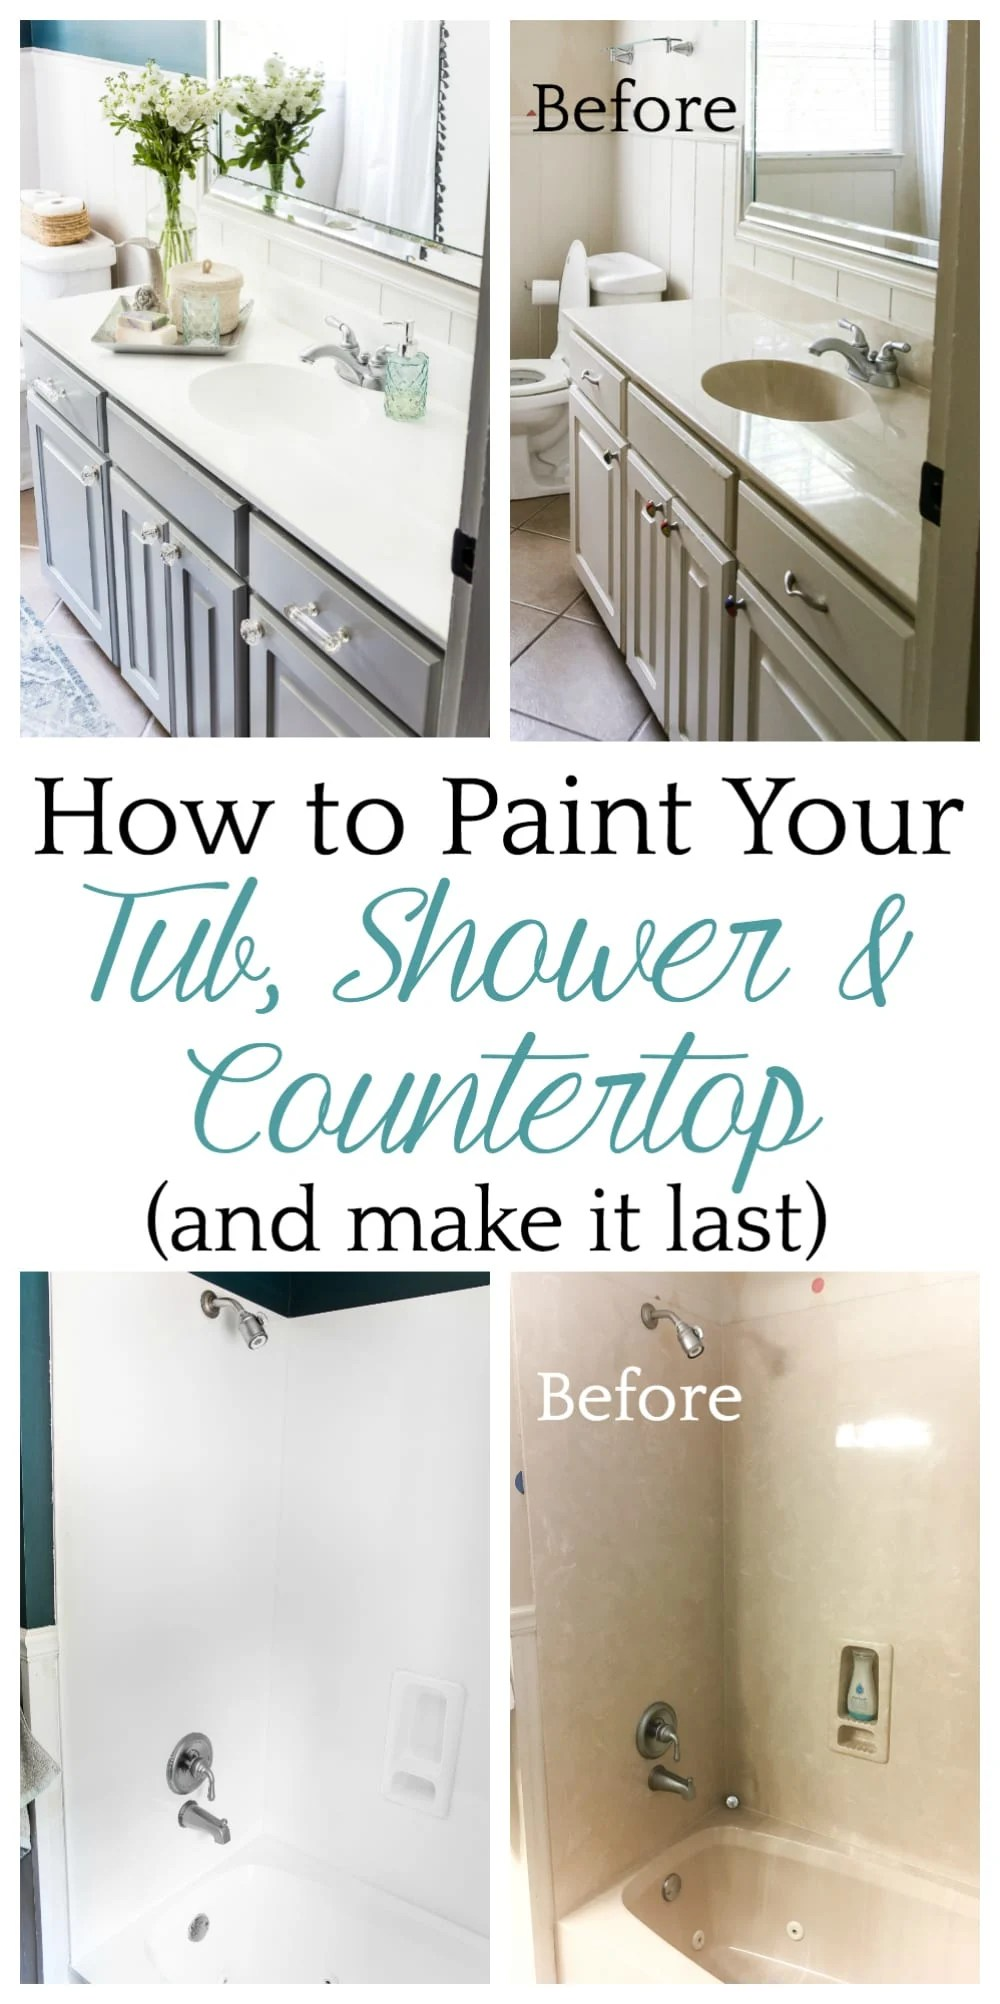 Top 10 Home and DIY Blog Posts of 2018 | How to Paint Your Tub, Shower, Sink & Countertop and make it last